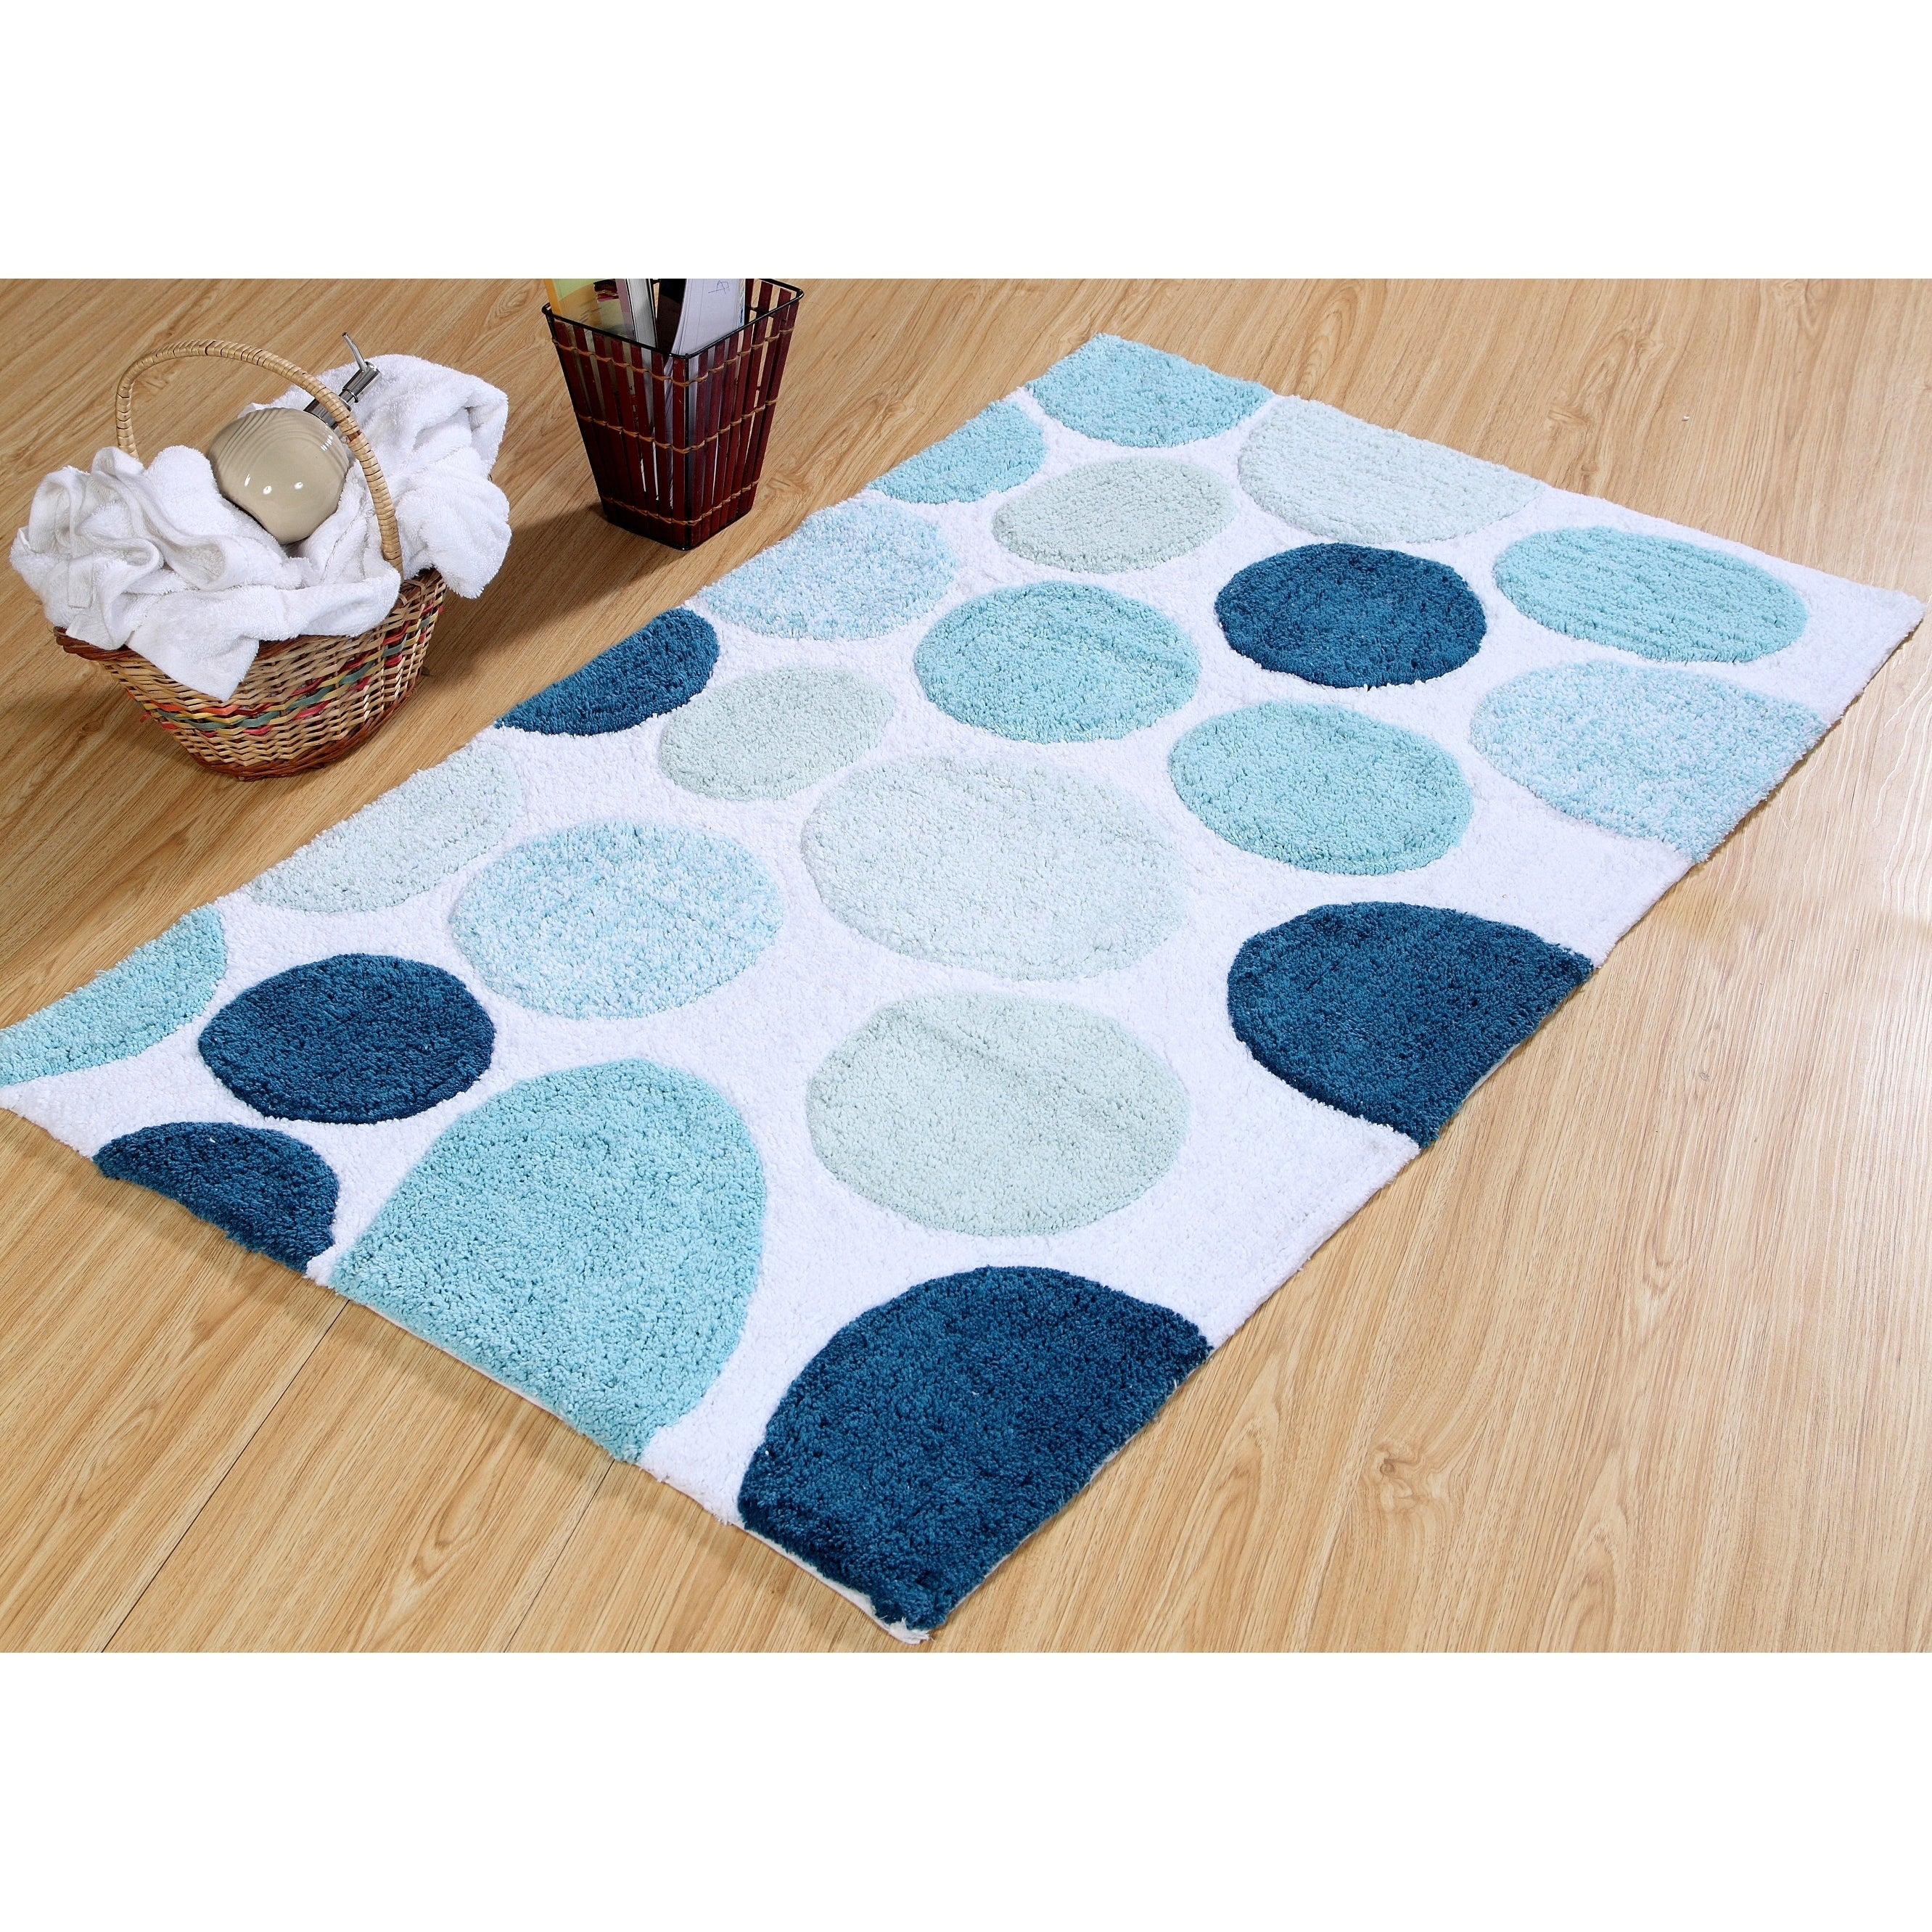 Saffron Fabs Bath Rug Cotton